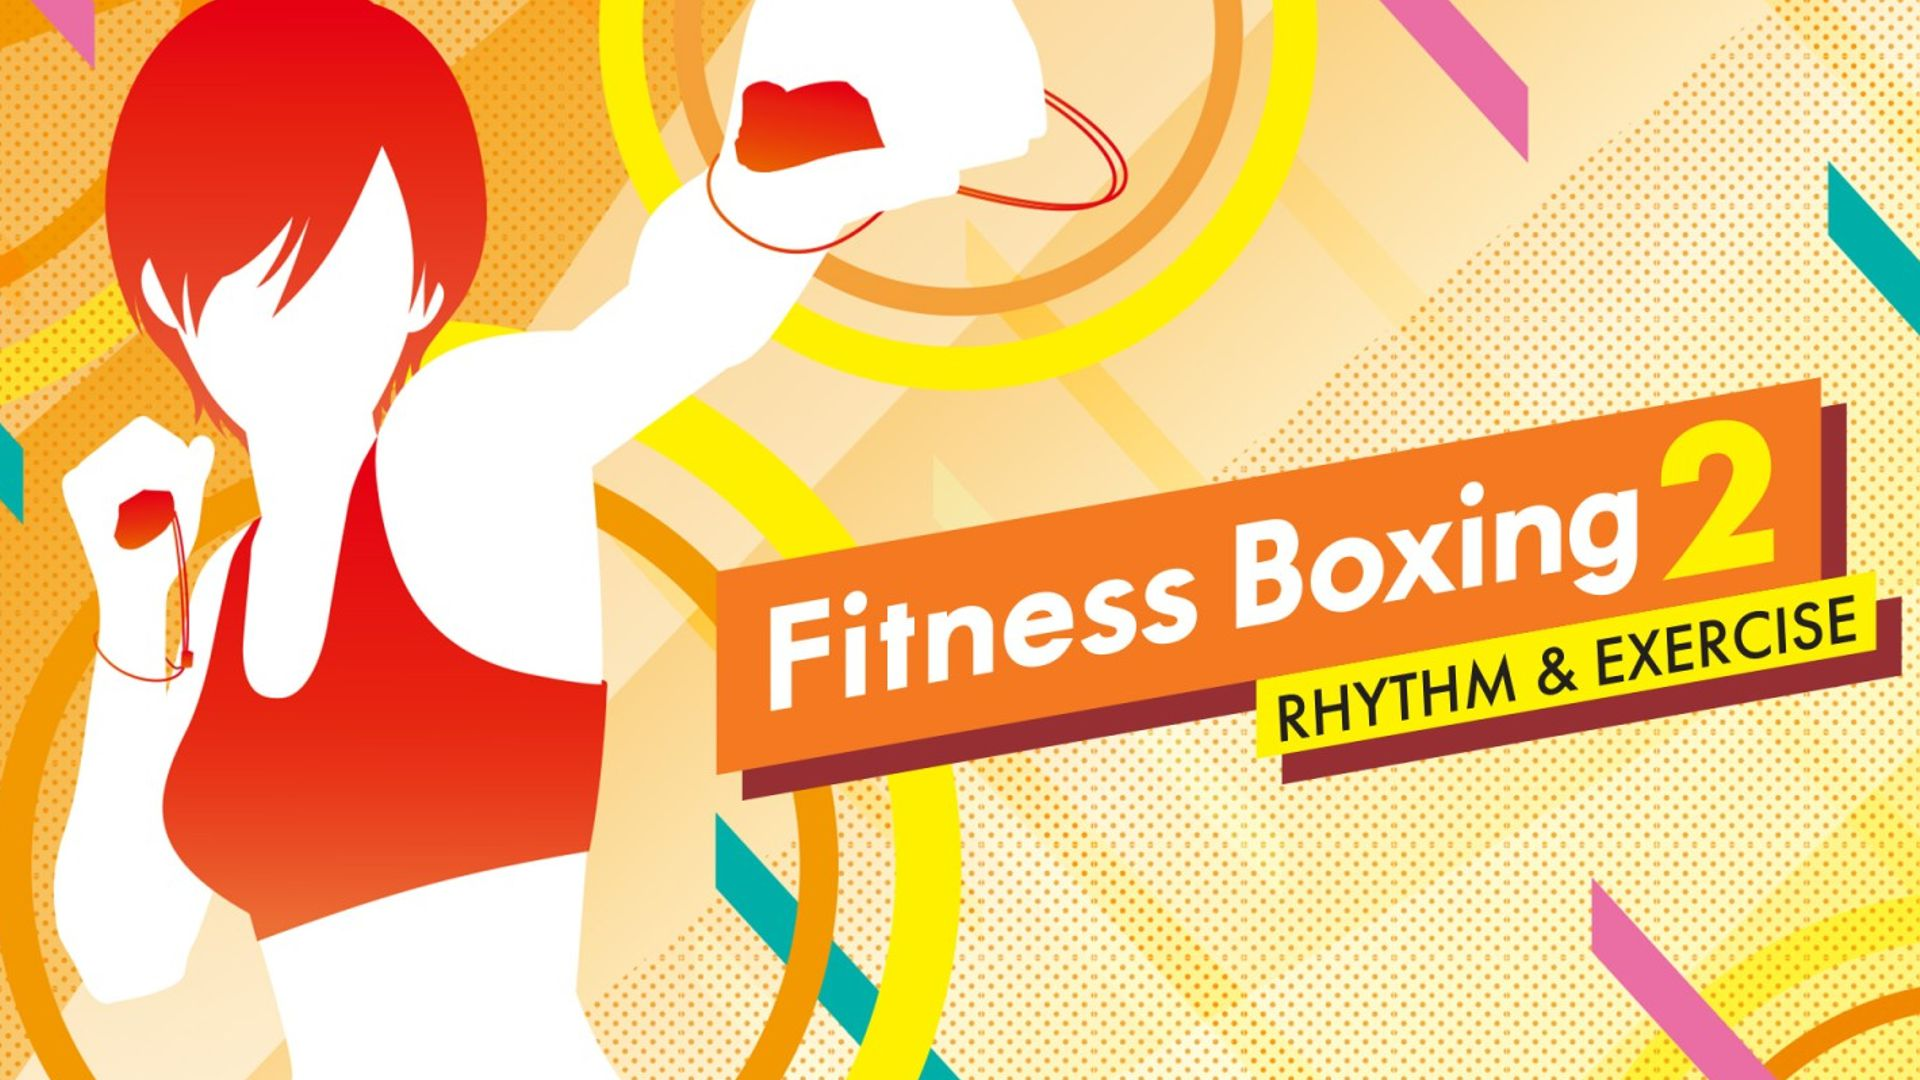 Fitness Boxing 2 Rhythm & Exercise Principal